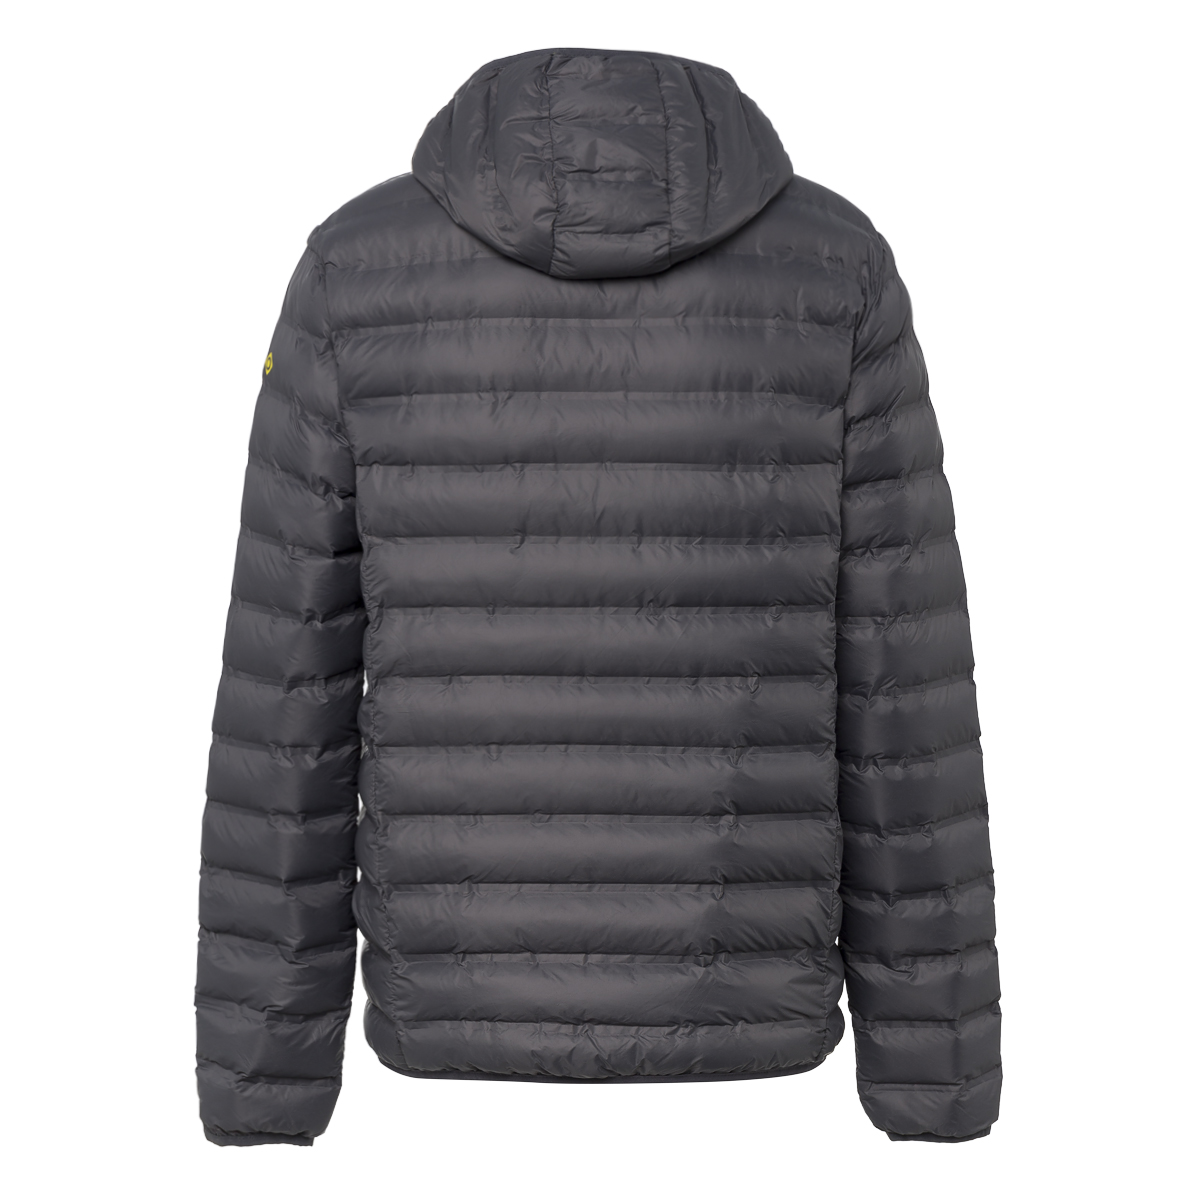 MAN'S MARBORE PADDING JACKET GREY